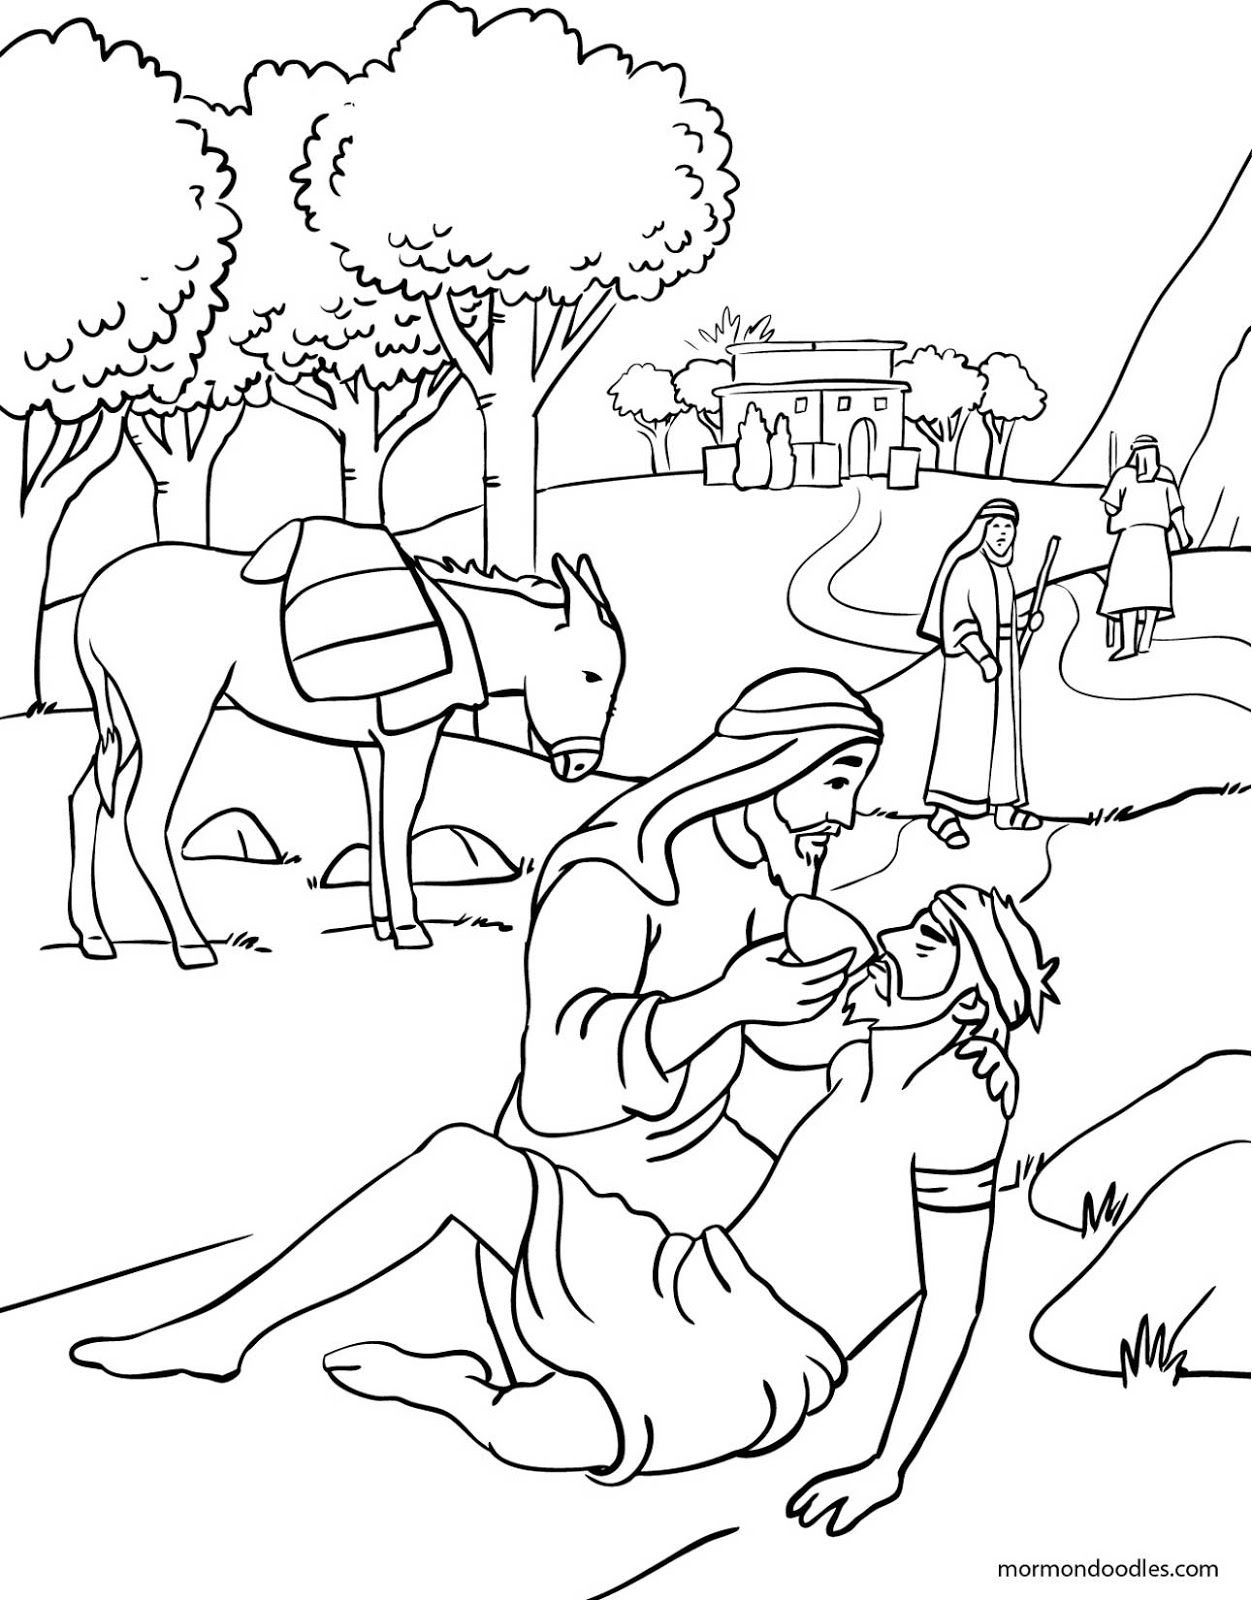 mormon doodles the good samaritan coloring page - Good Samaritan Coloring Page